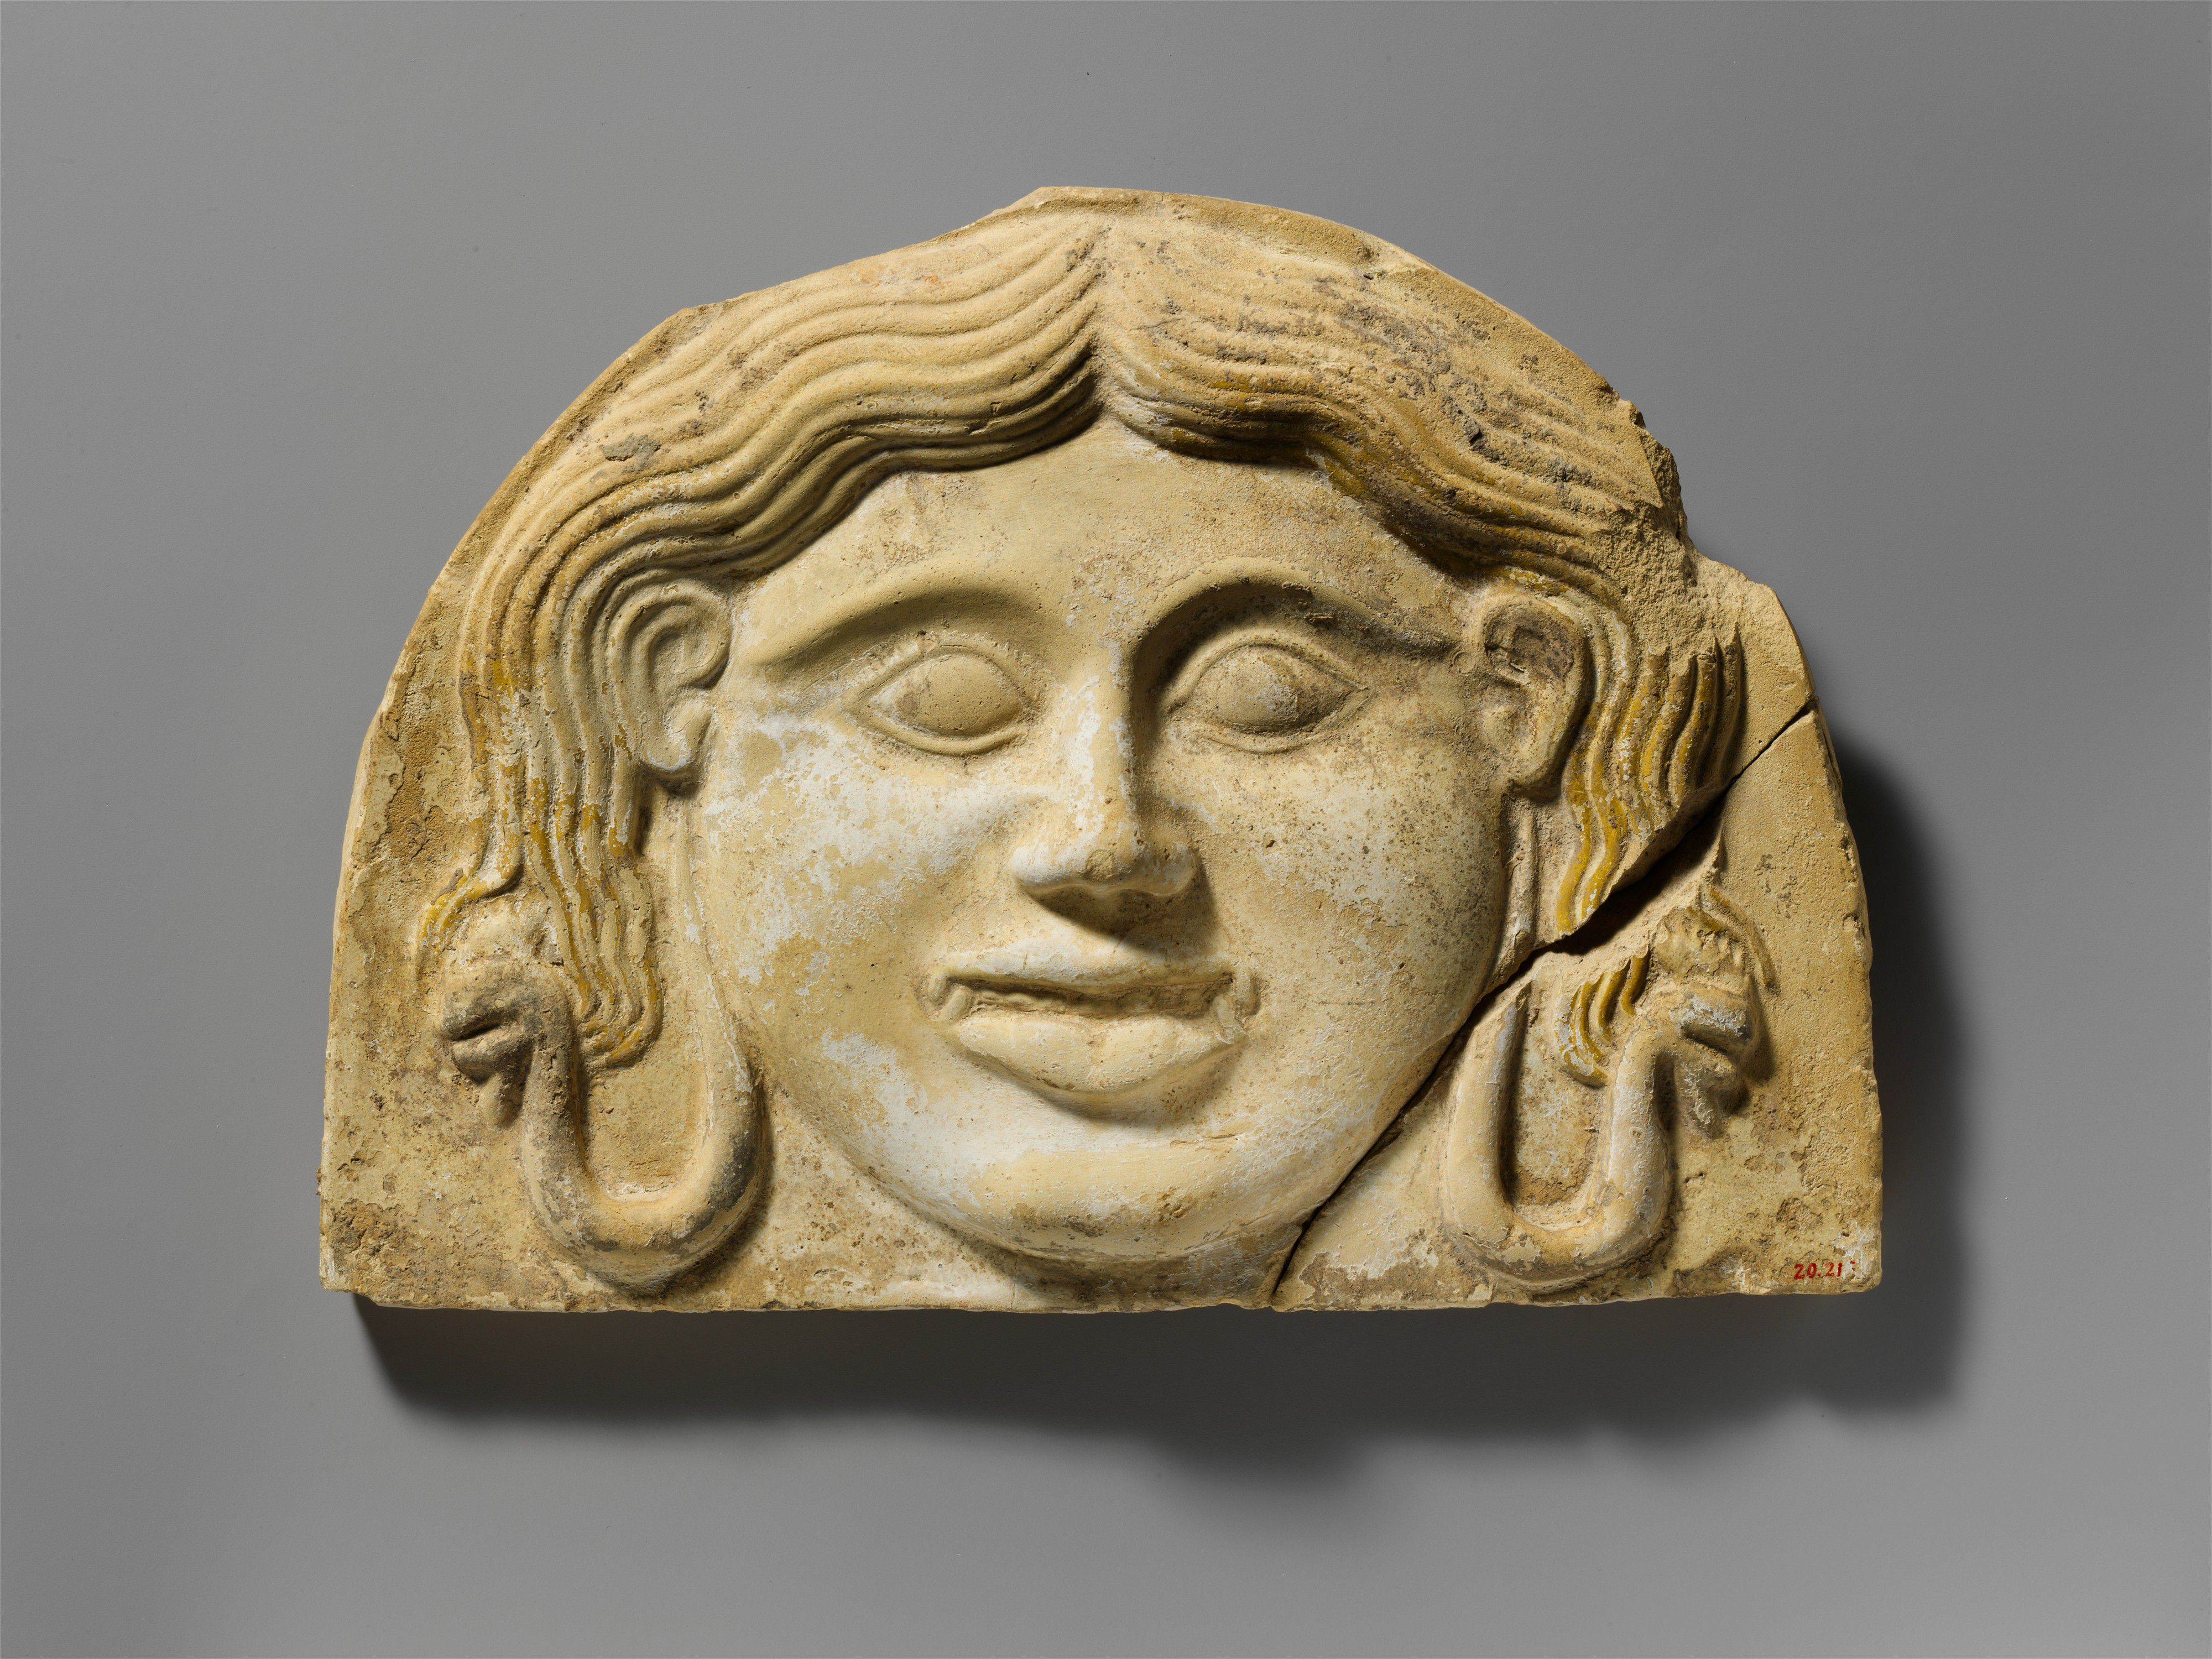 Classical Greek terracotta gorgoneion antefix (roof tile), 2nd half of 5th c BC